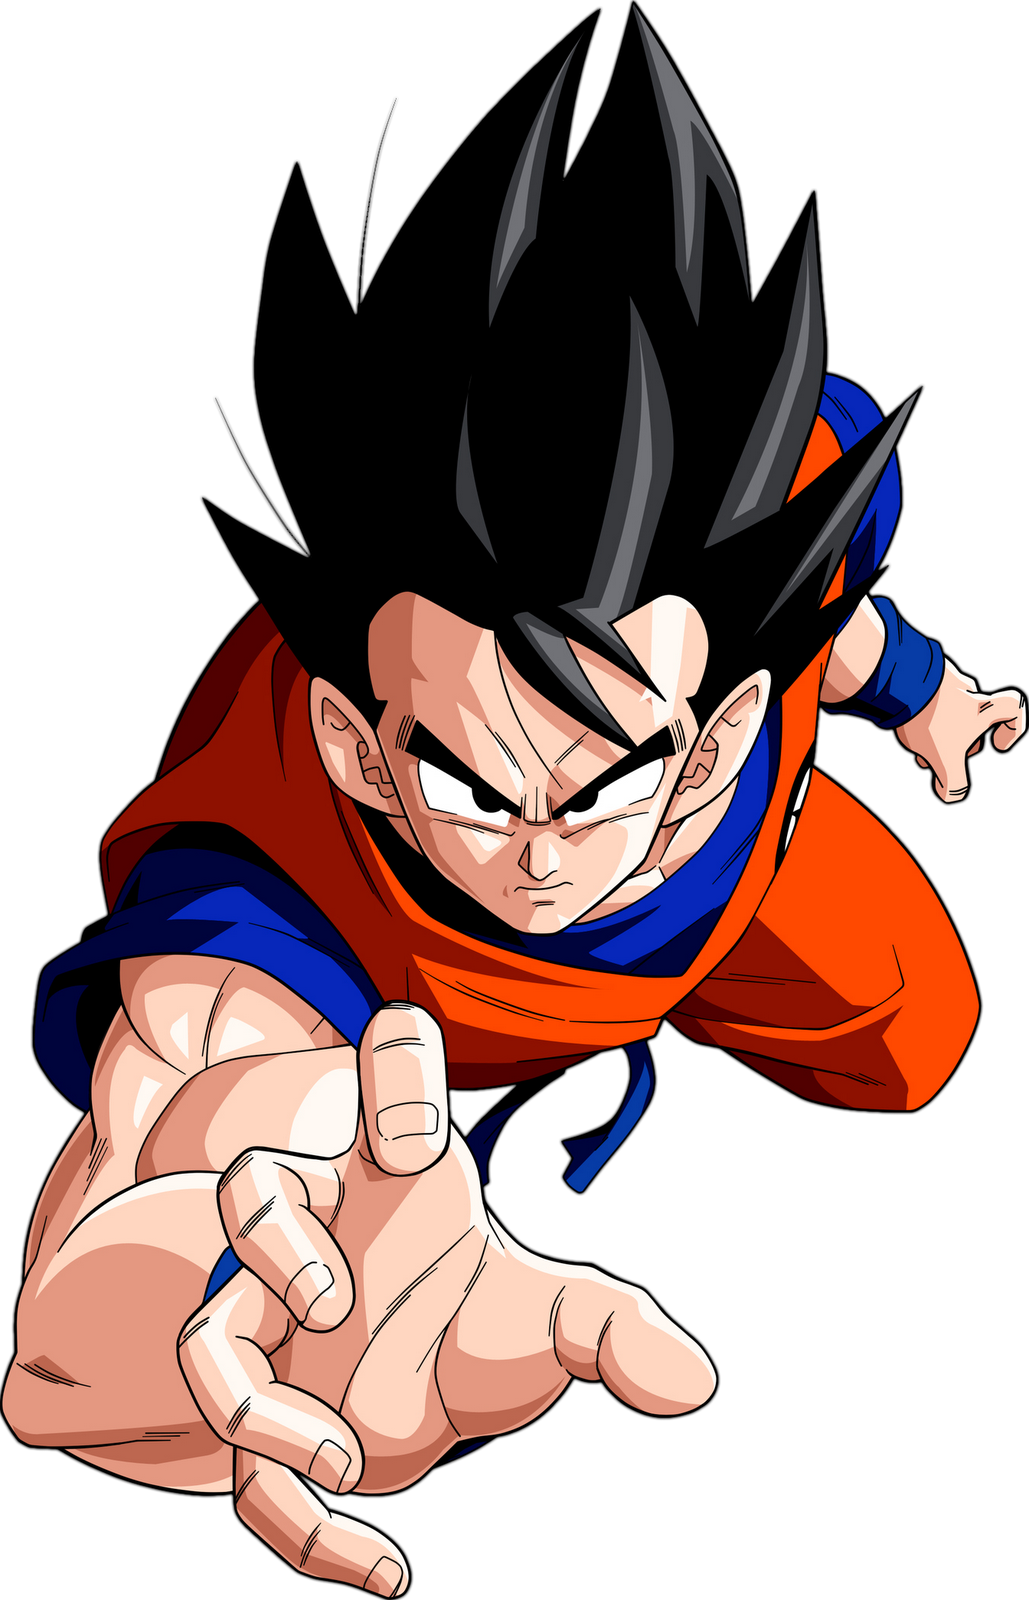 Render Dragon Ball z Goku.png